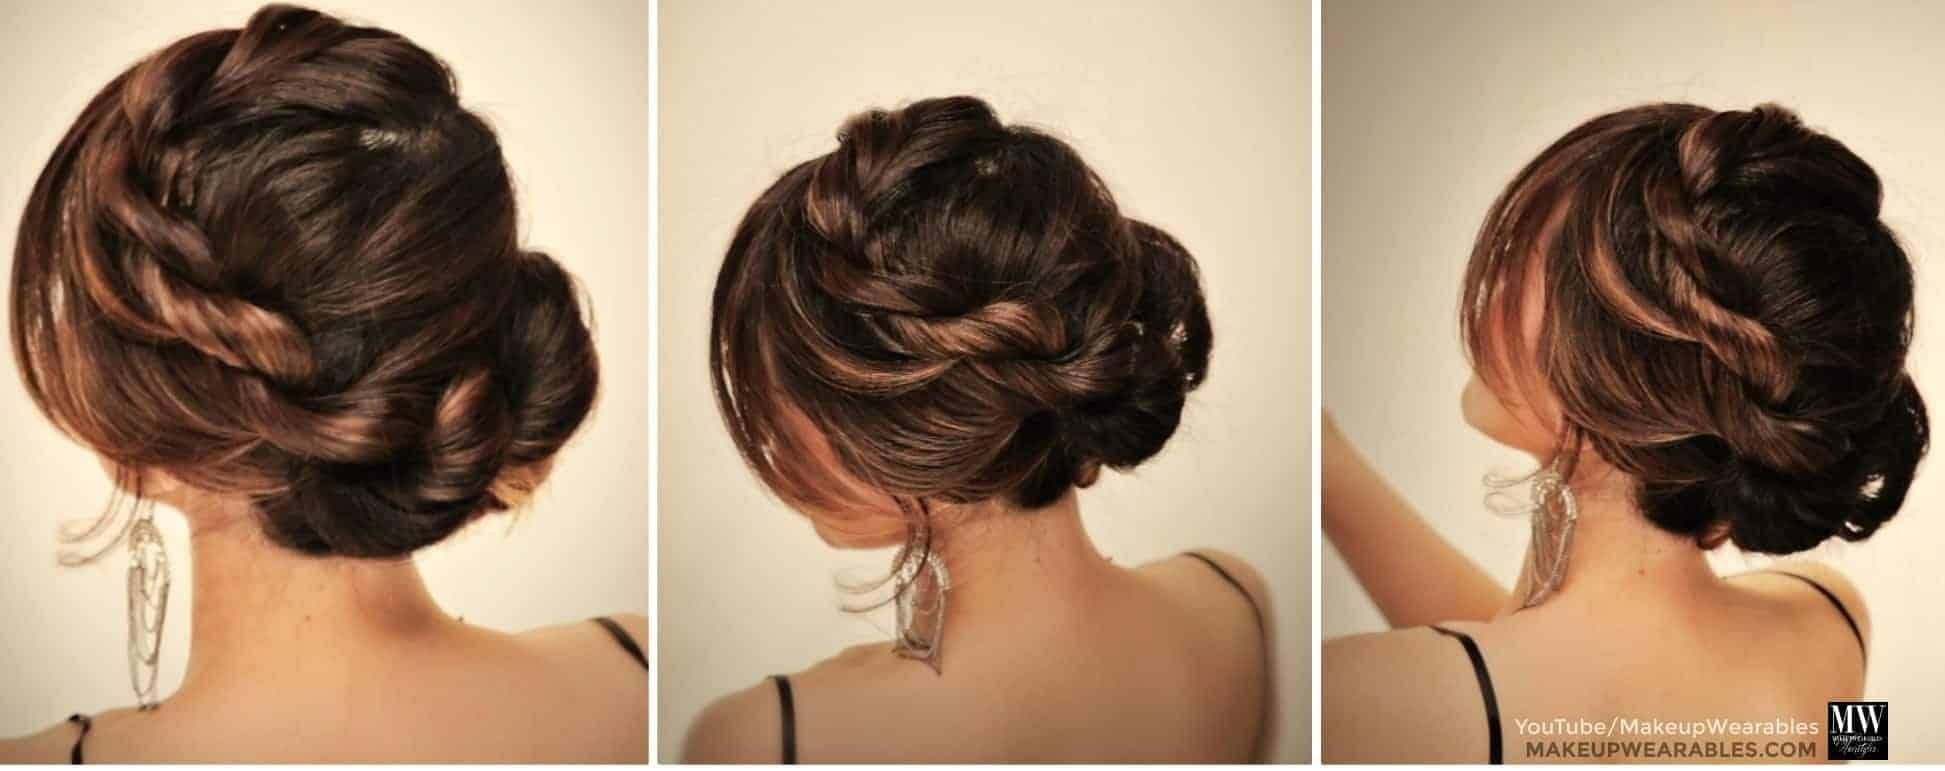 Magnificent Low Bun Hairstyles Long Hair Best Hairstyles 2017 Hairstyle Inspiration Daily Dogsangcom